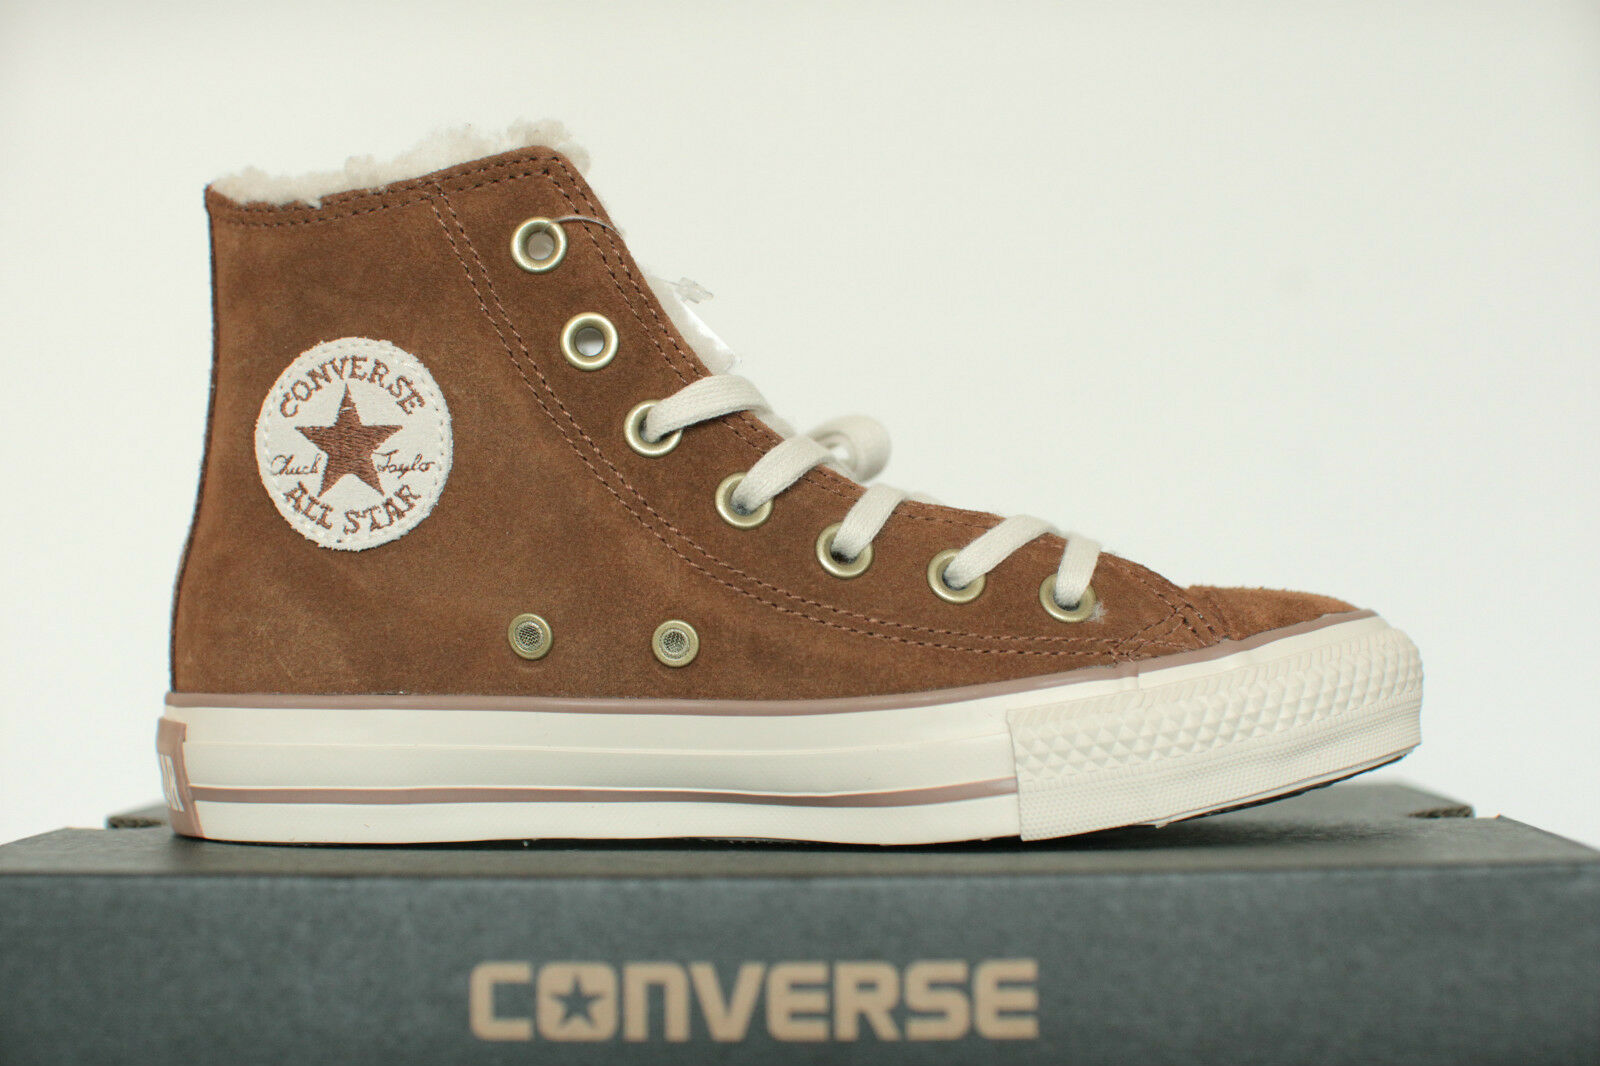 New all Star Converse Chucks Hi Leather Shearling Monks Robe 133085c High Top